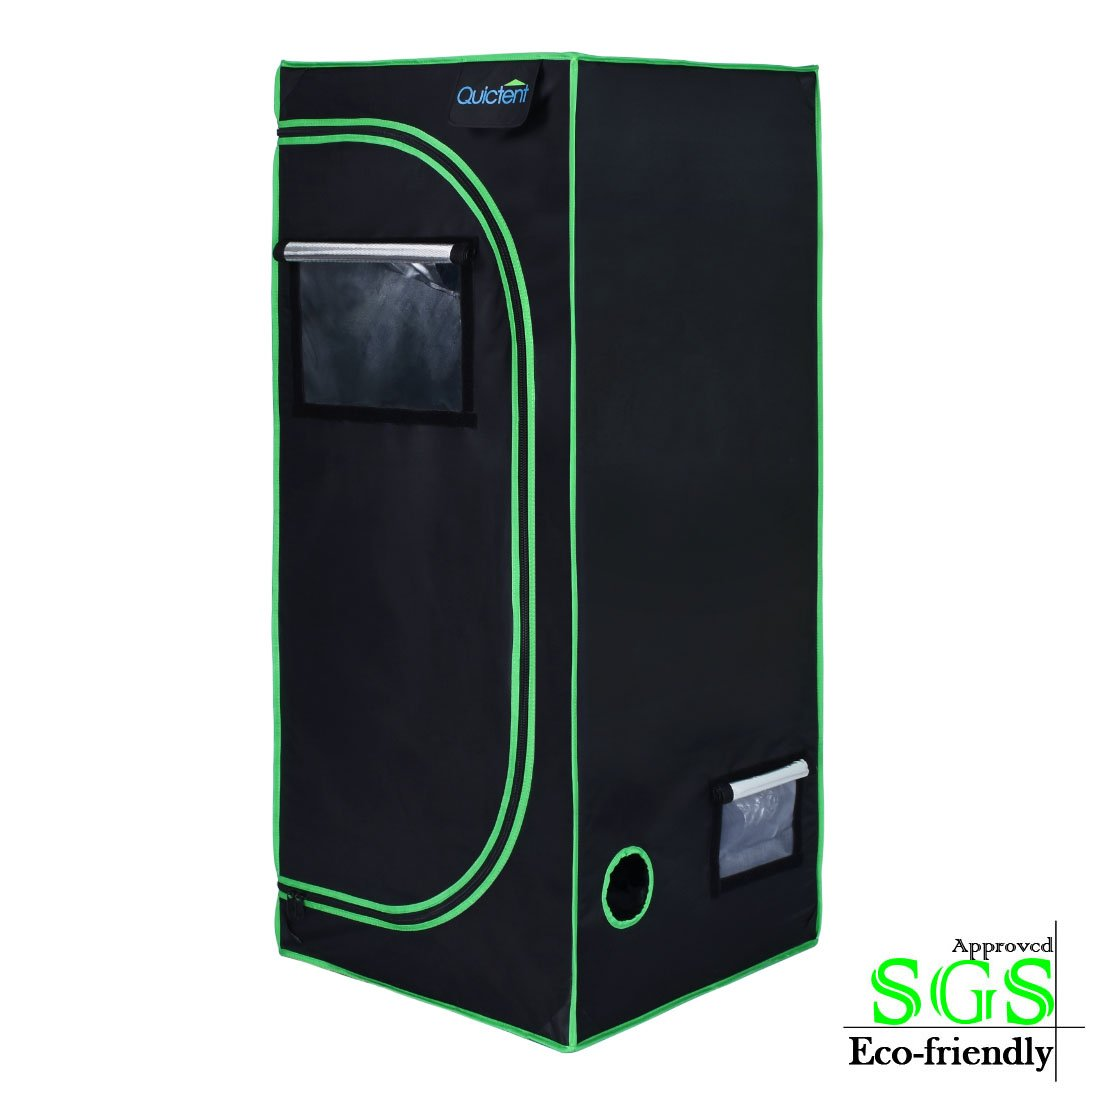 Quictent SGS Approved Eco-Friendly 24''x24''x48'' Reflective Mylar Hydroponic Grow Tent with Obeservation Window and Waterproof Floor Tray for Indoor Plant Growing 2'x2'